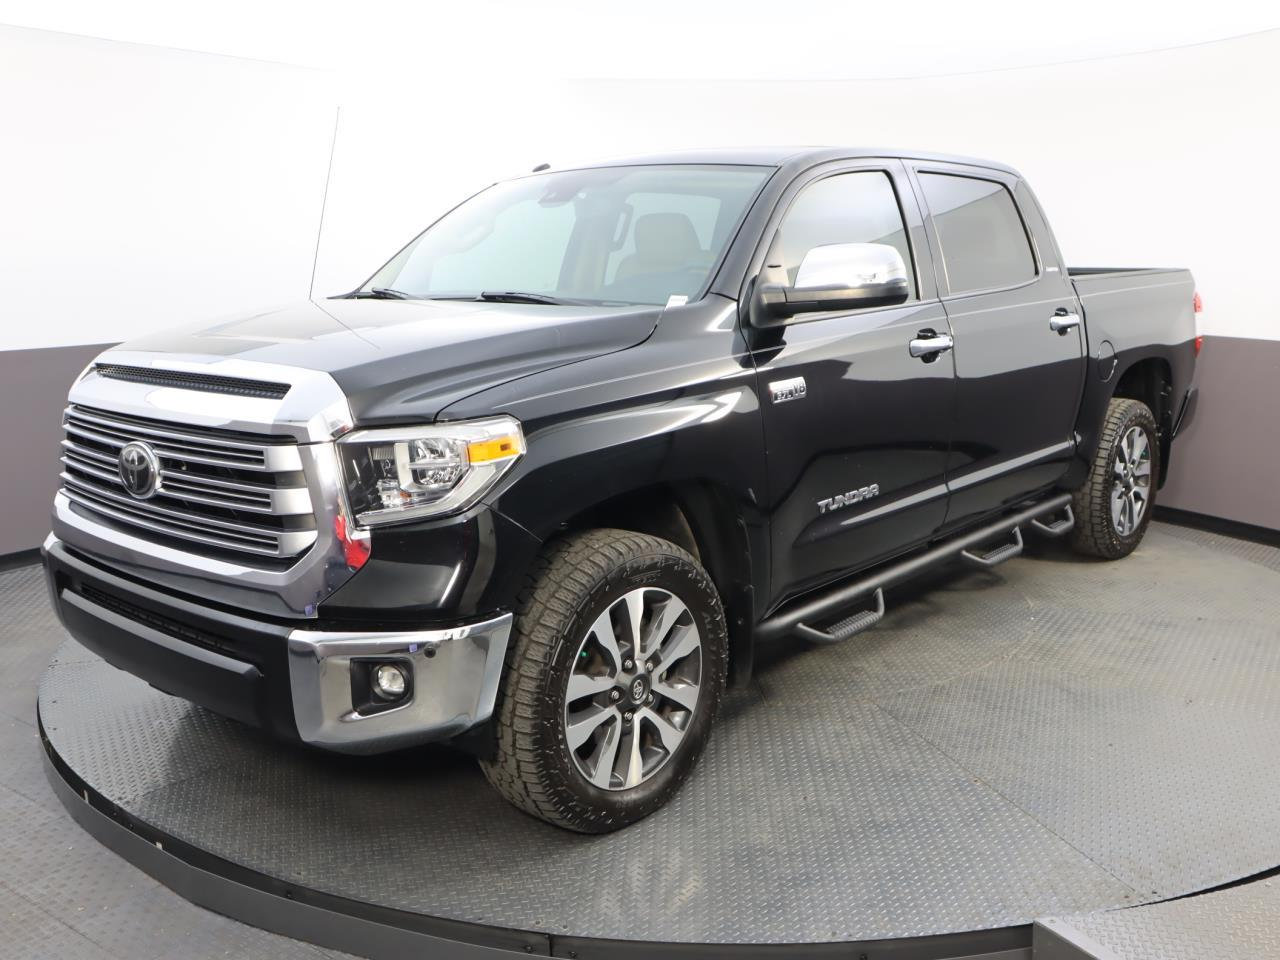 Used TOYOTA TUNDRA-4WD 2018 MIAMI LIMITED